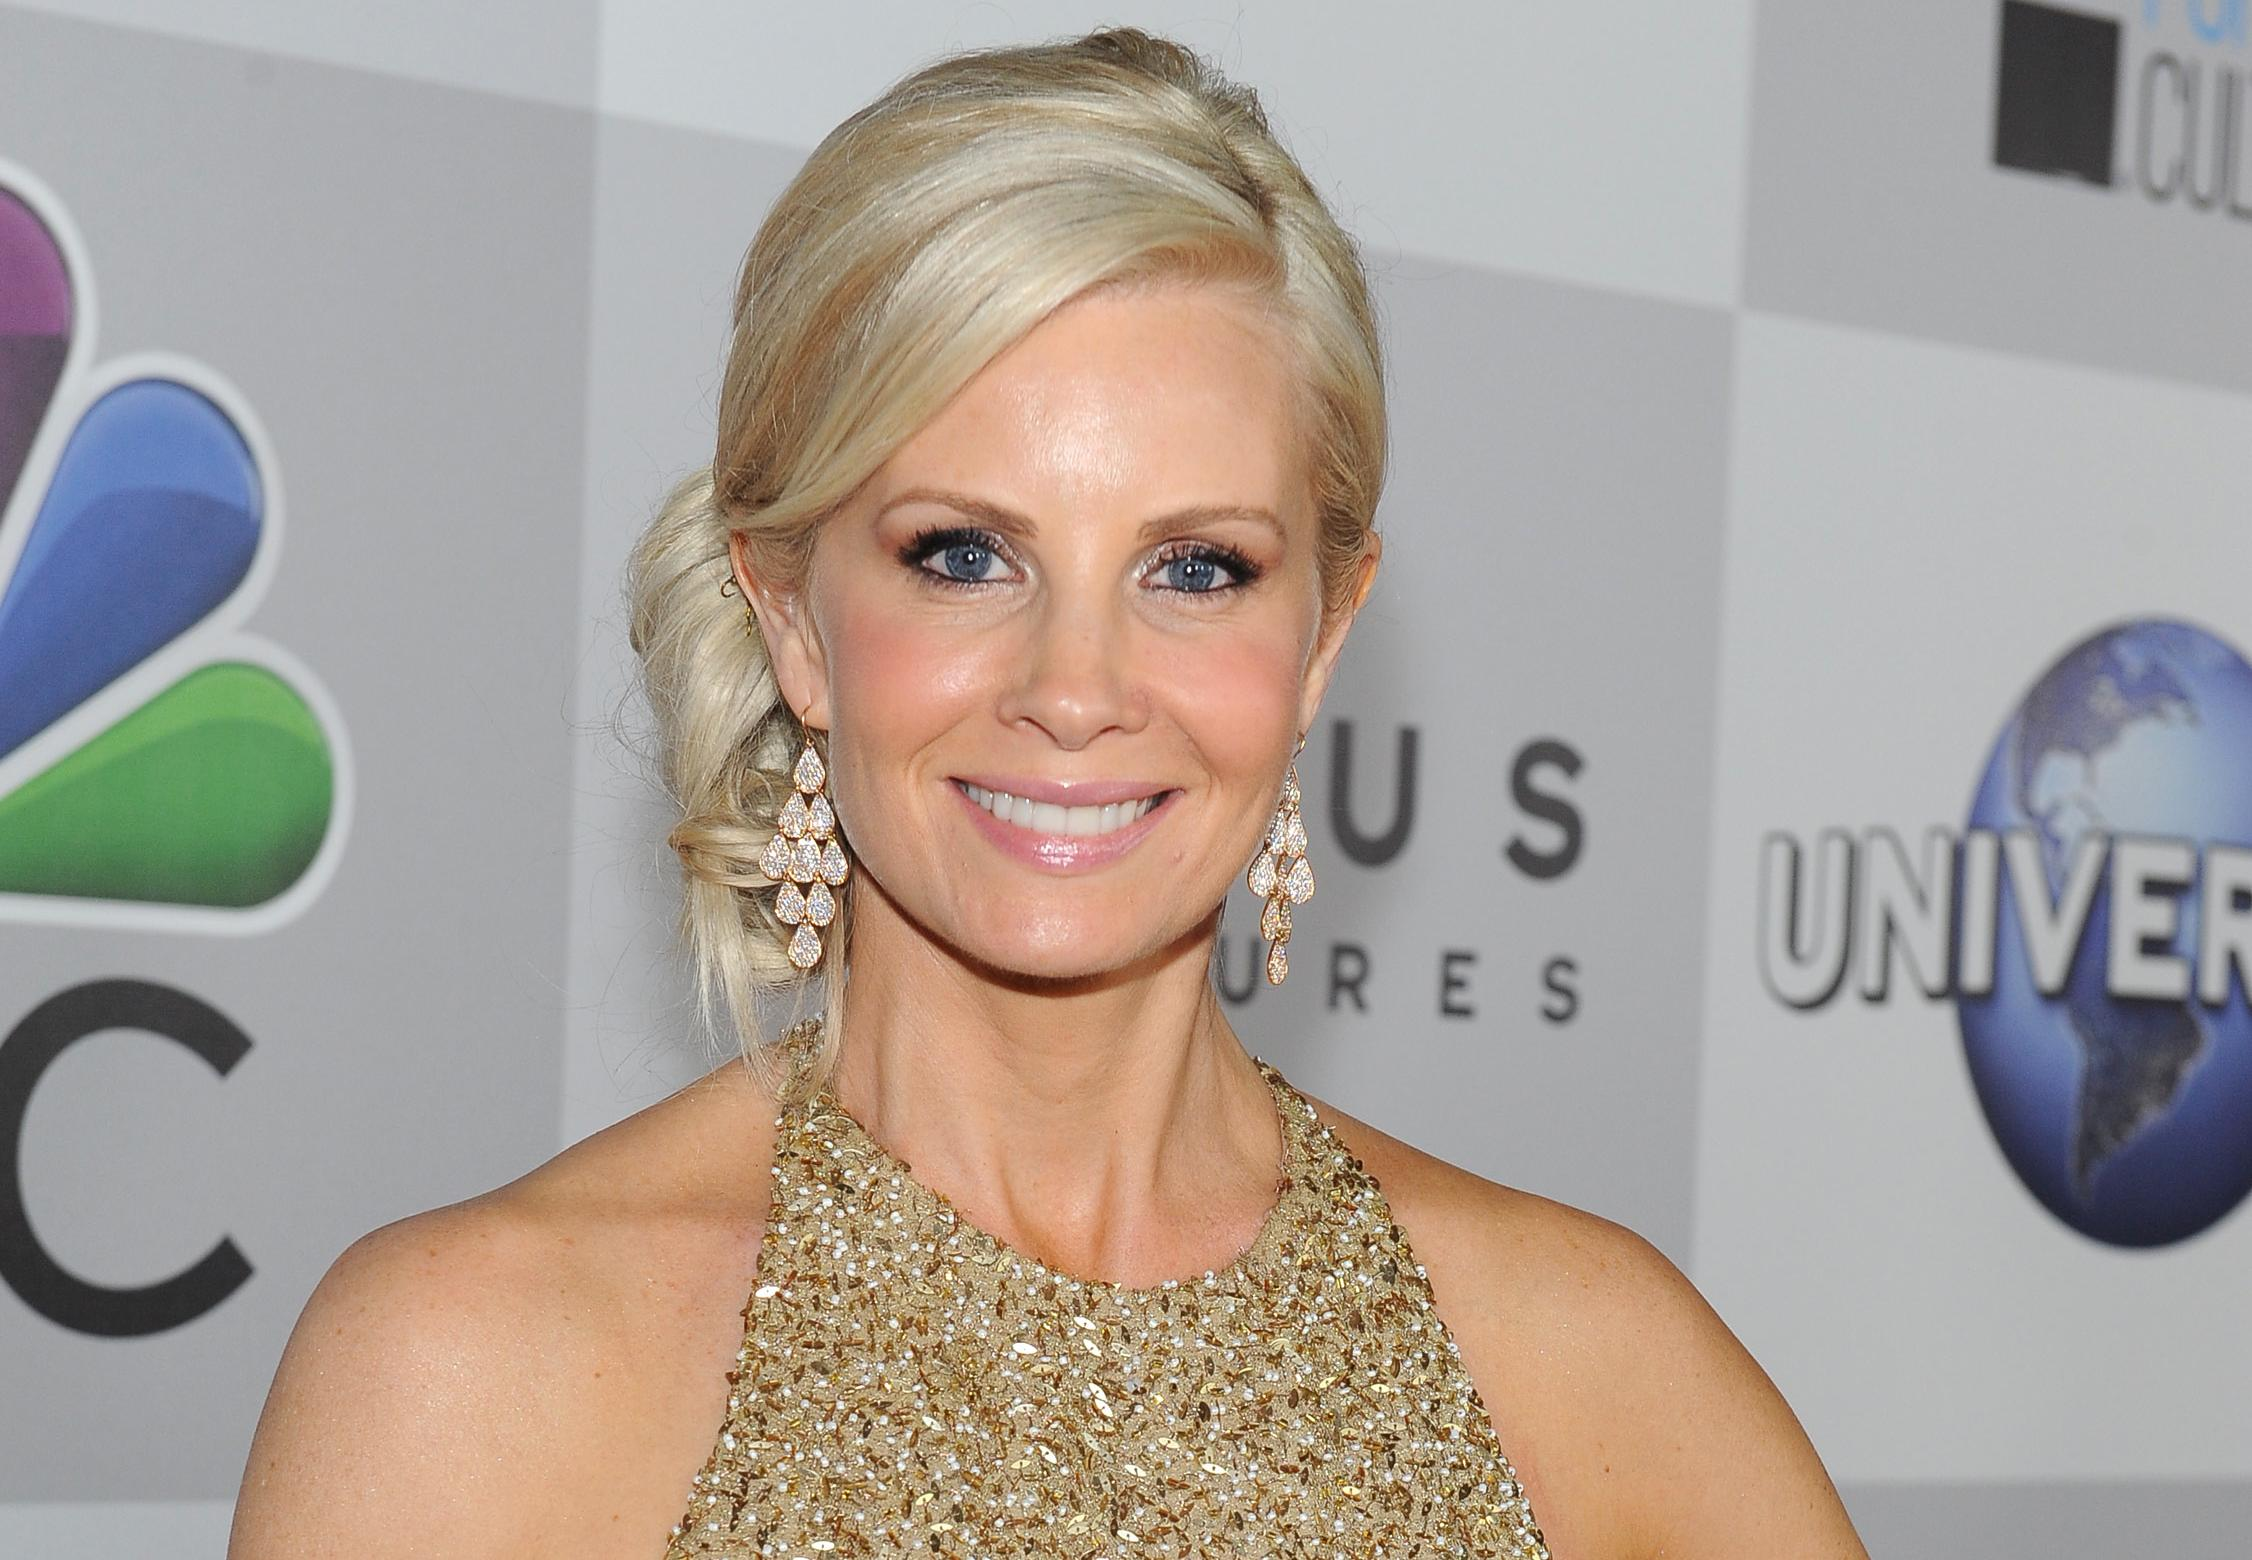 Monica Potter Comedy Produced By Ellen DeGeneres, Workplace Comedy From Jimmy Fallon Get NBC Pilot Orders